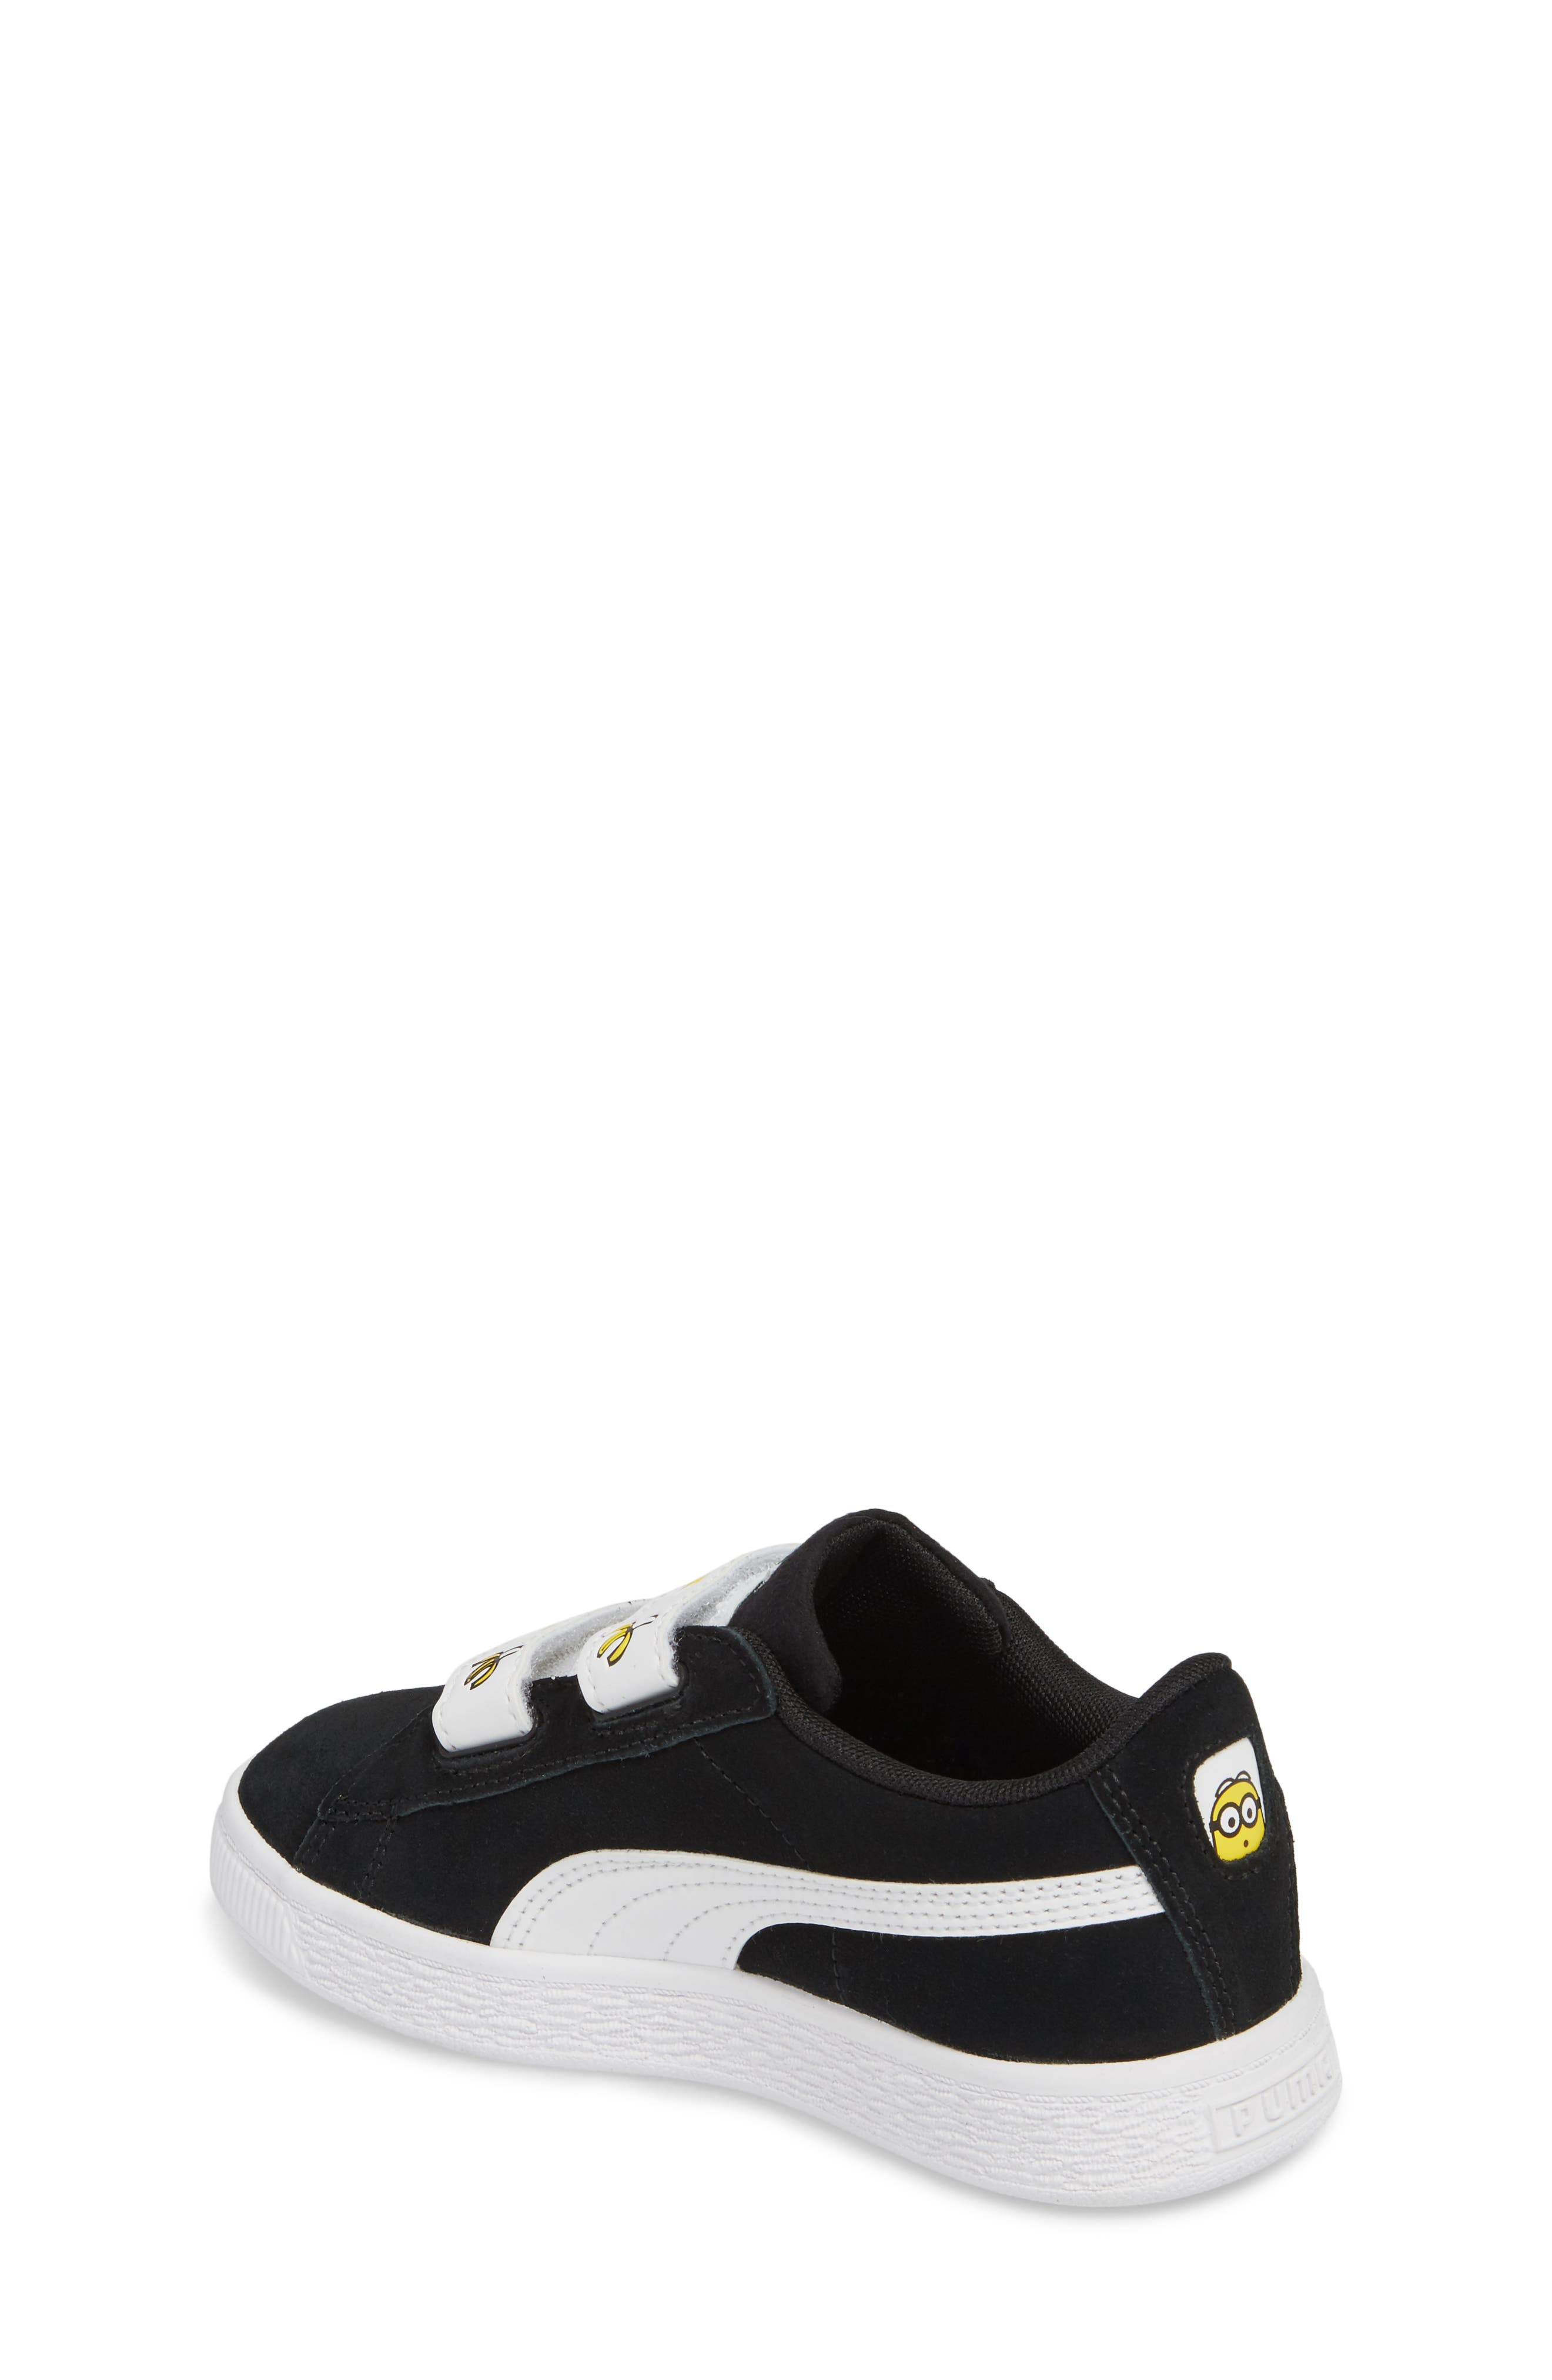 x Minions Suede V Sneaker,                             Alternate thumbnail 2, color,                             001